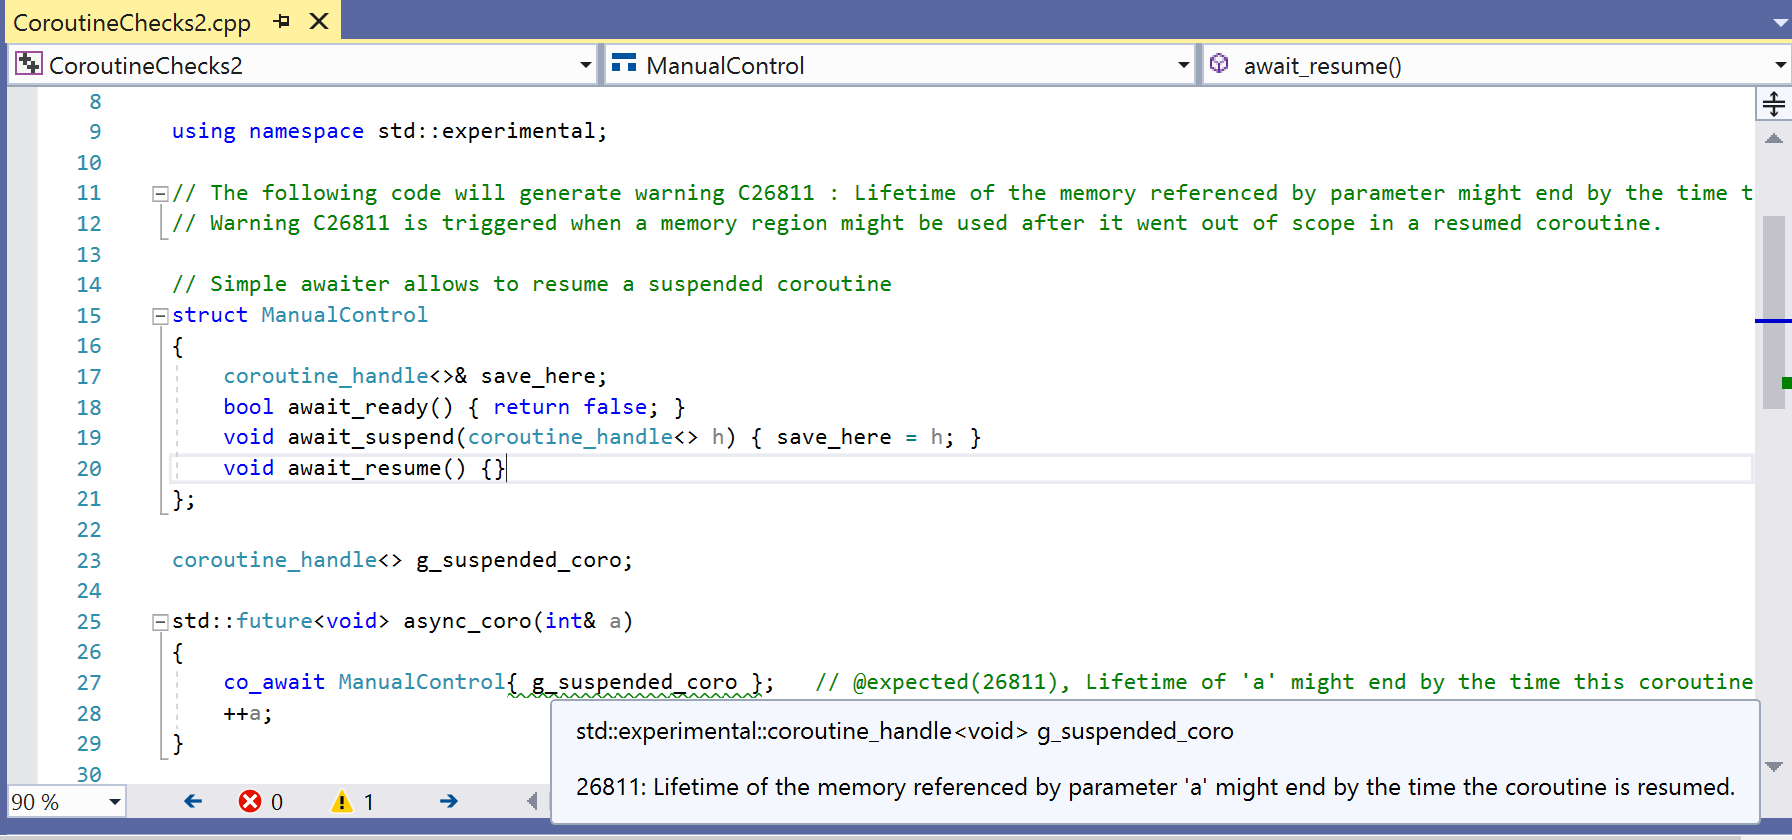 Screenshot showing a warning that the lifetime of a variable might end before the coroutine is resumed.